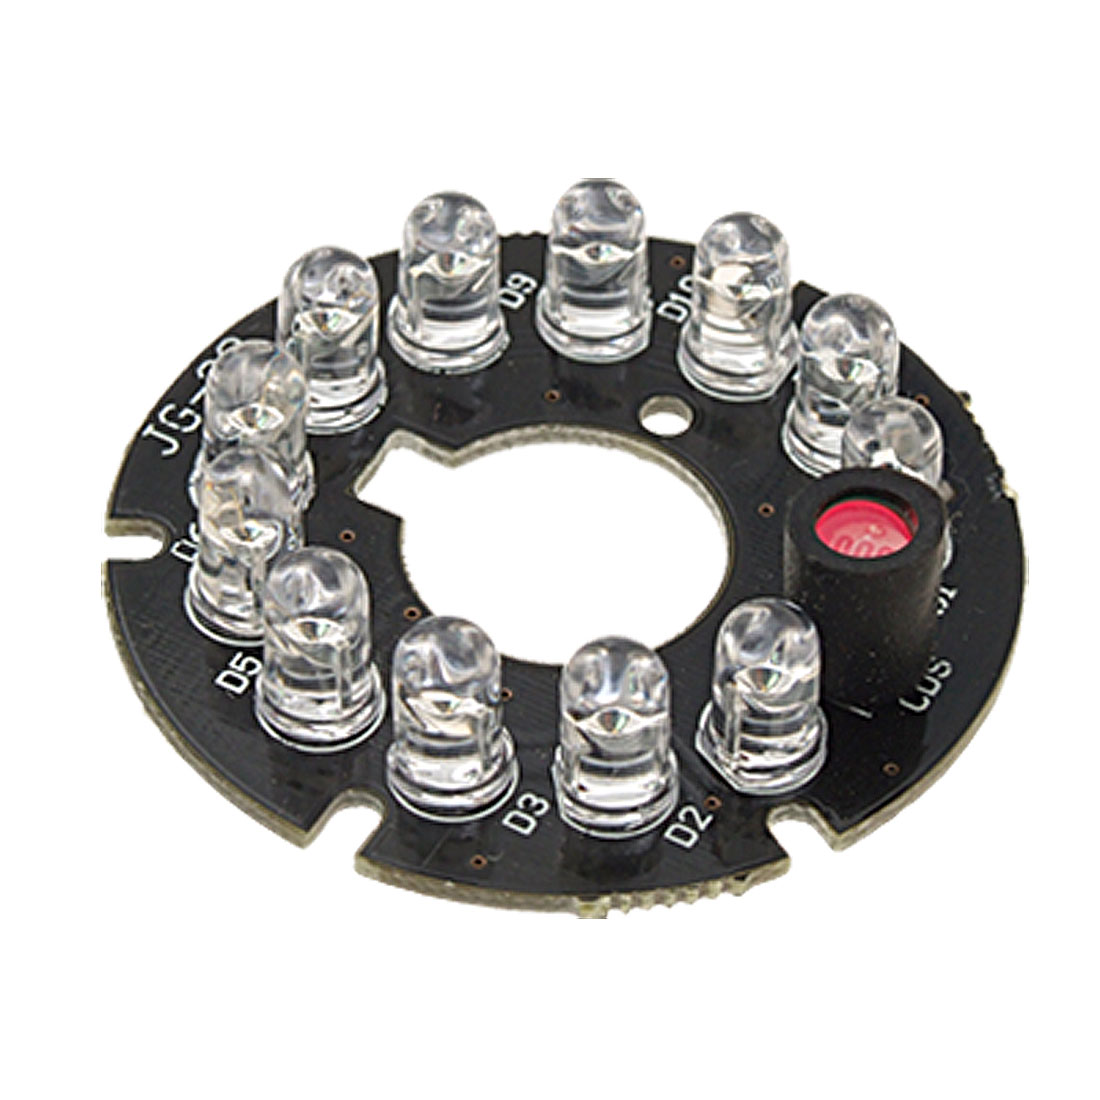 IR 12 Led Board Plate for CCTV Security CCD Camera Ovqnb